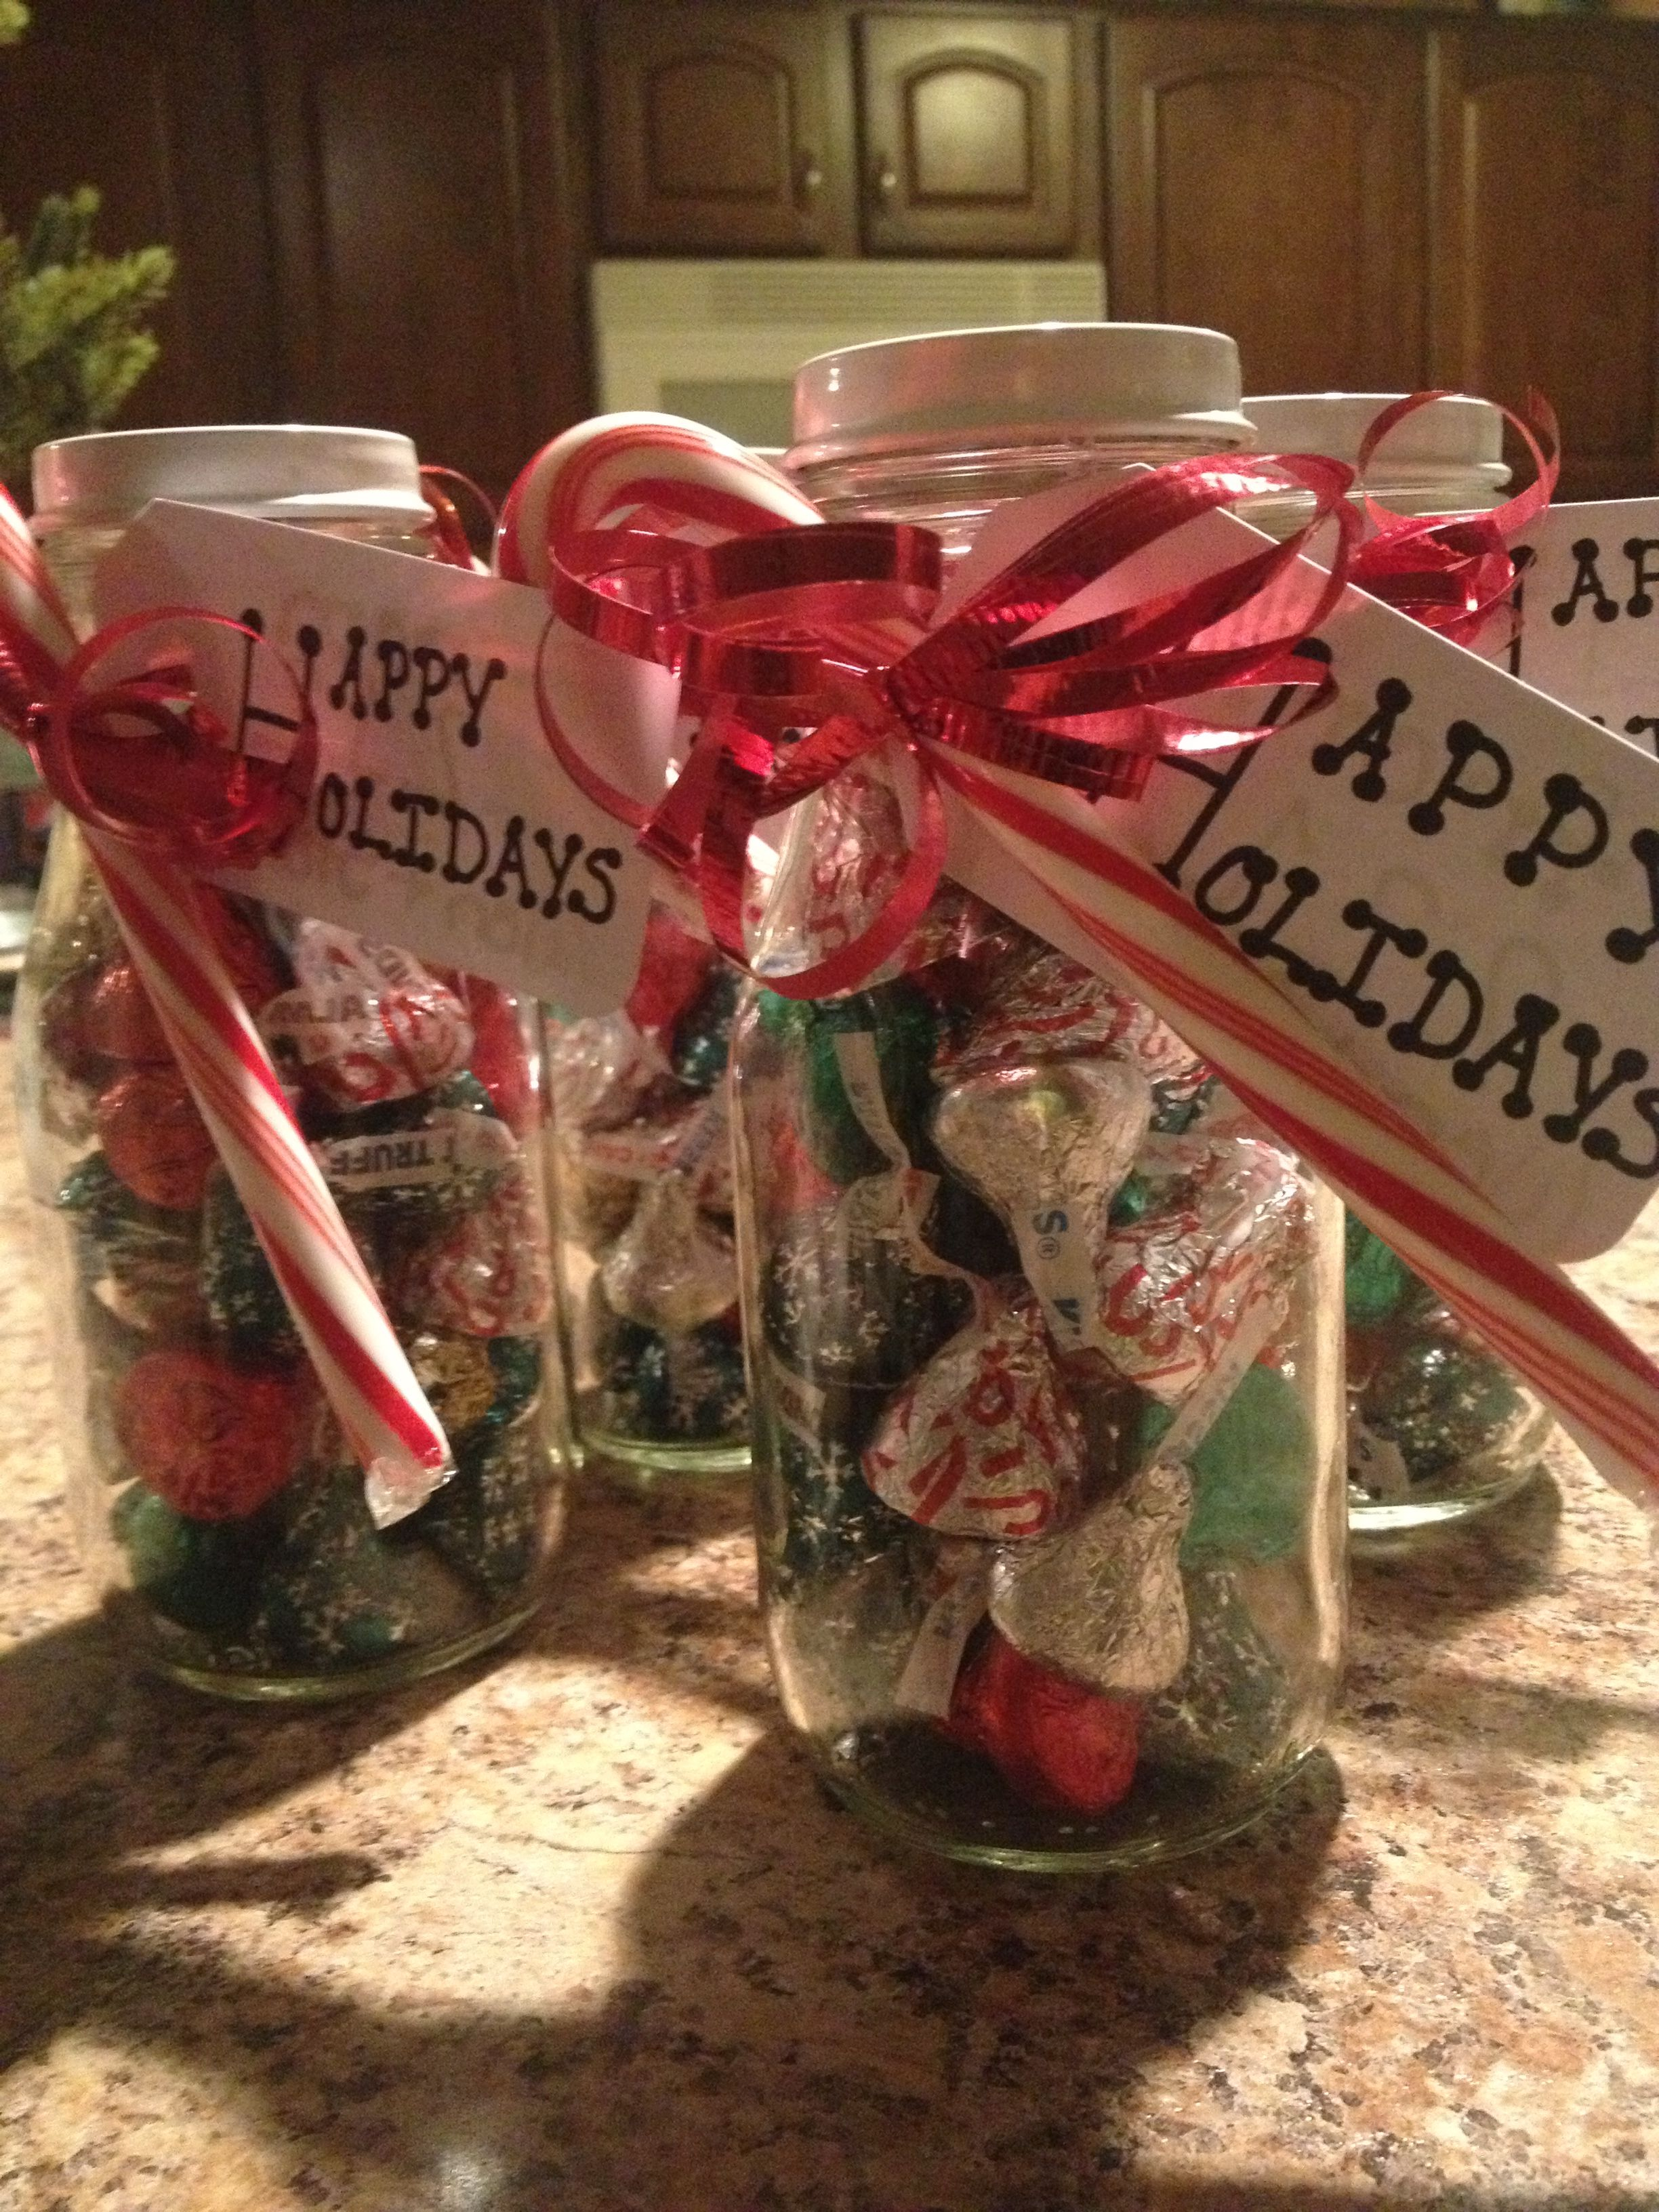 Fill a starbucks frappuccino glass with candy for a nice